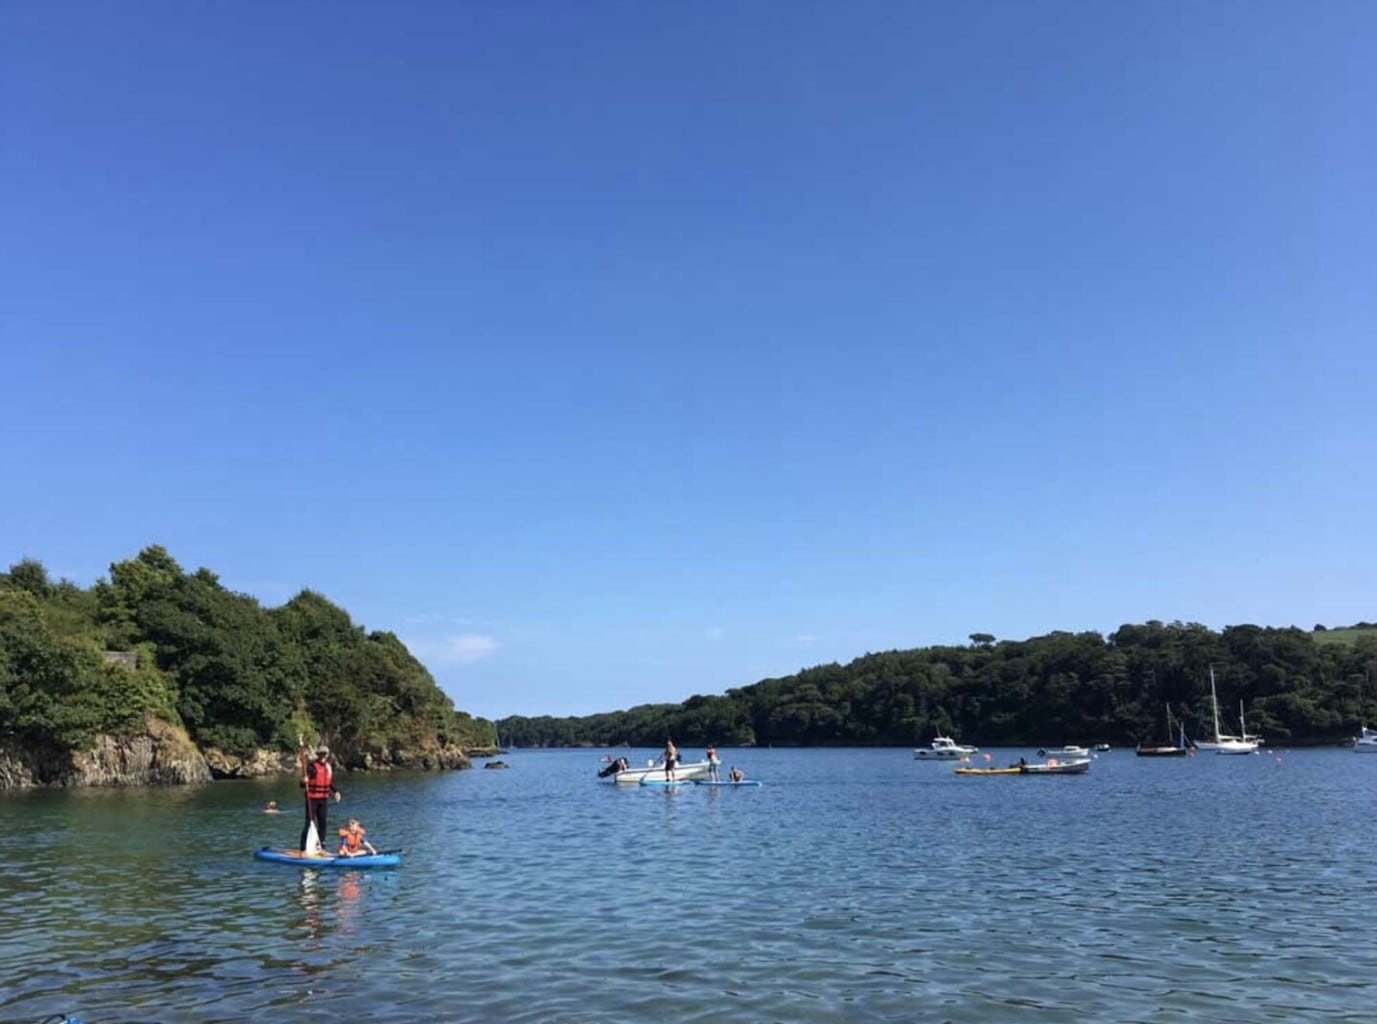 The River Helford